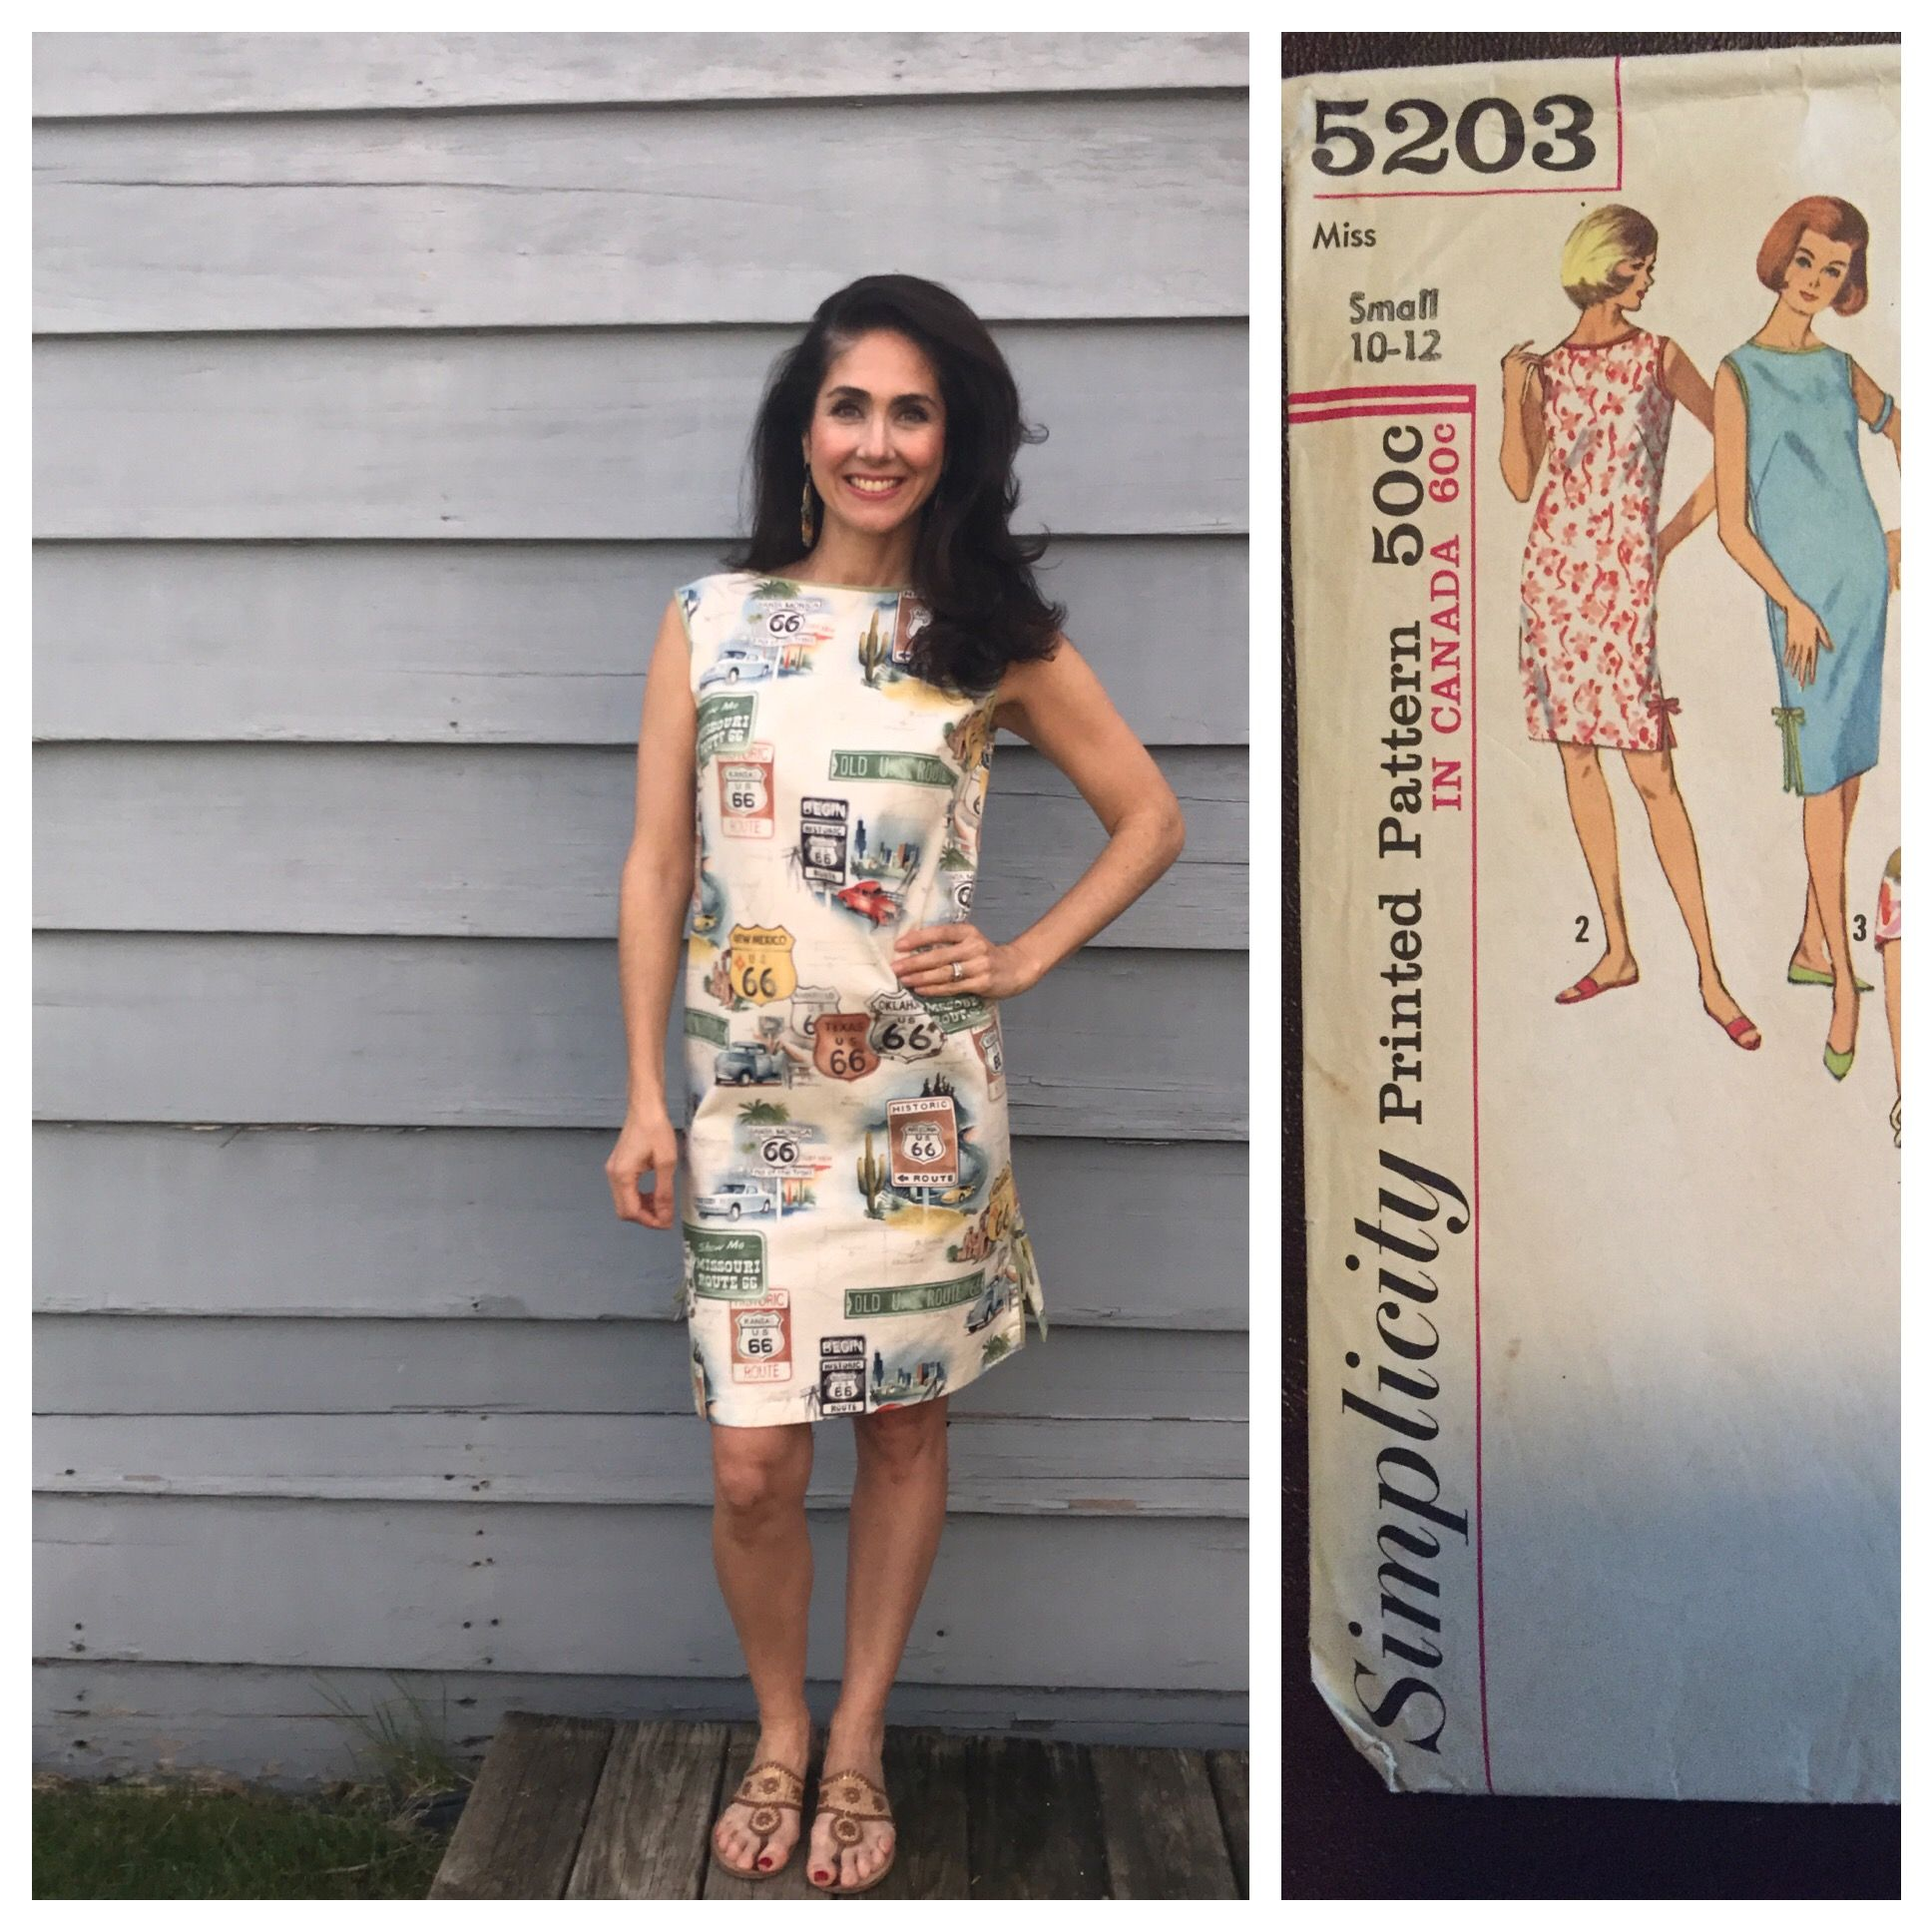 2017 Vintage Pledge Simplicity 5203 View 2 Not Only First Vintage Pattern Sewn But First Pattern Sew Garment Pattern 1960s Shift Dress Handmade Wardrobe